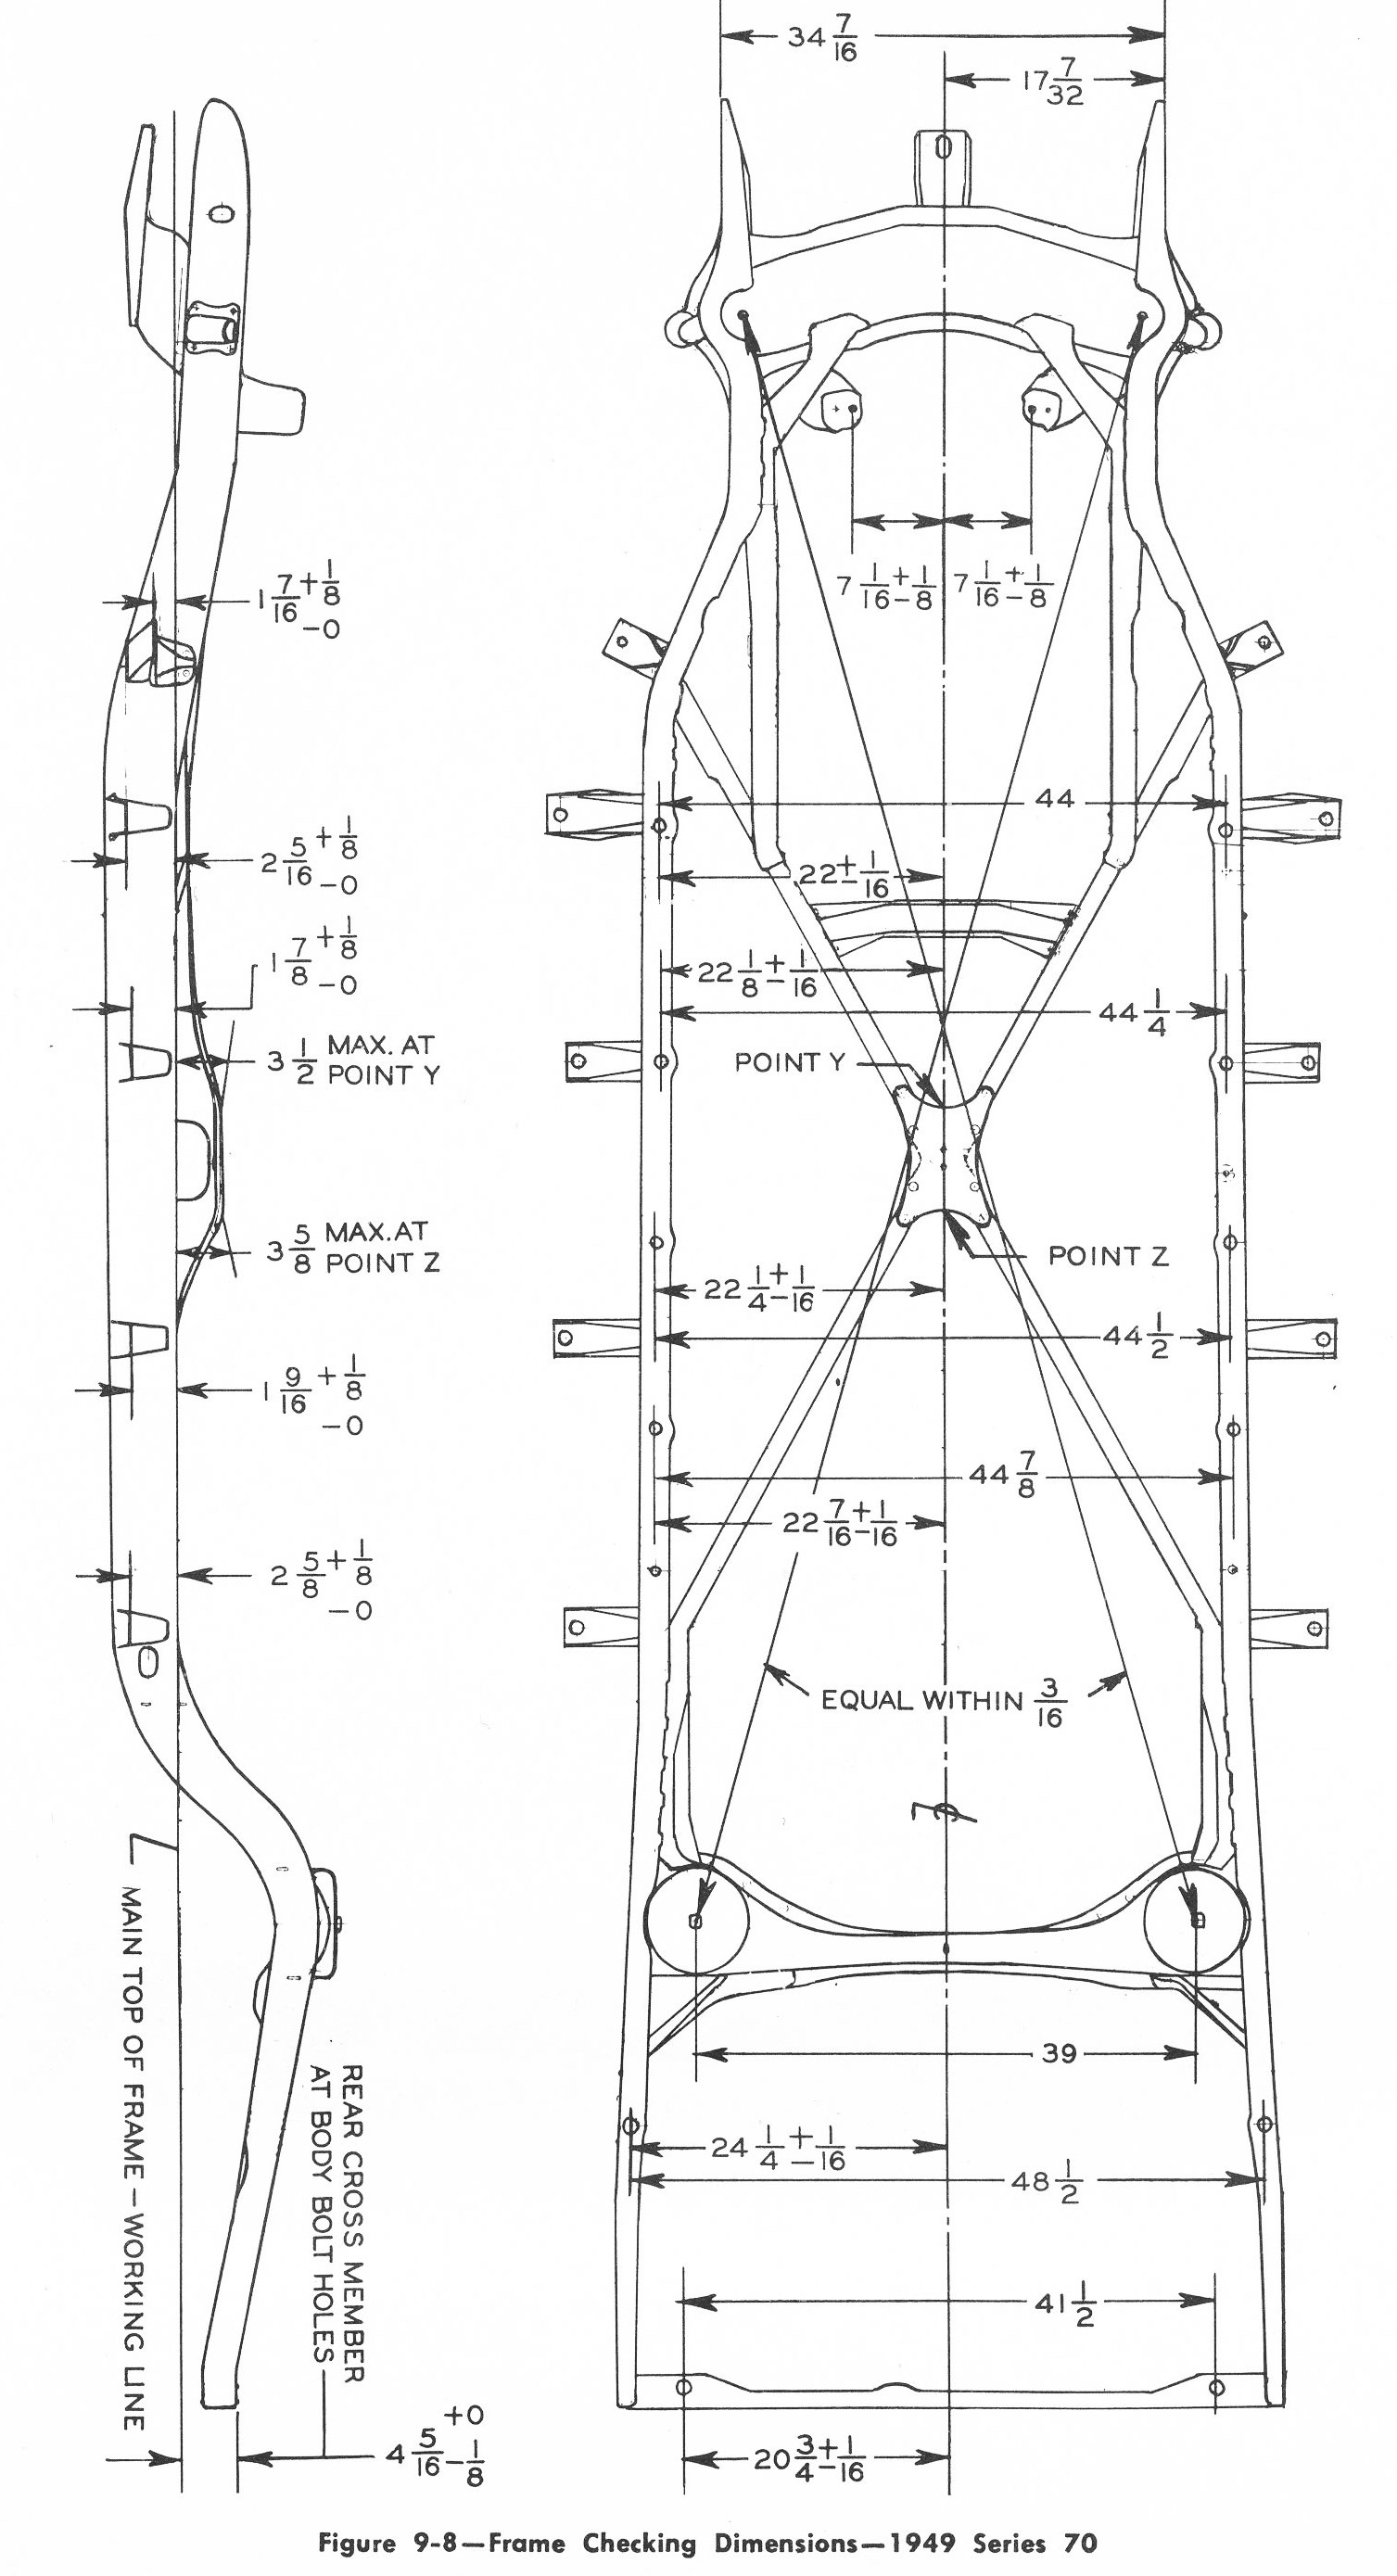 1932 ford frame diagram